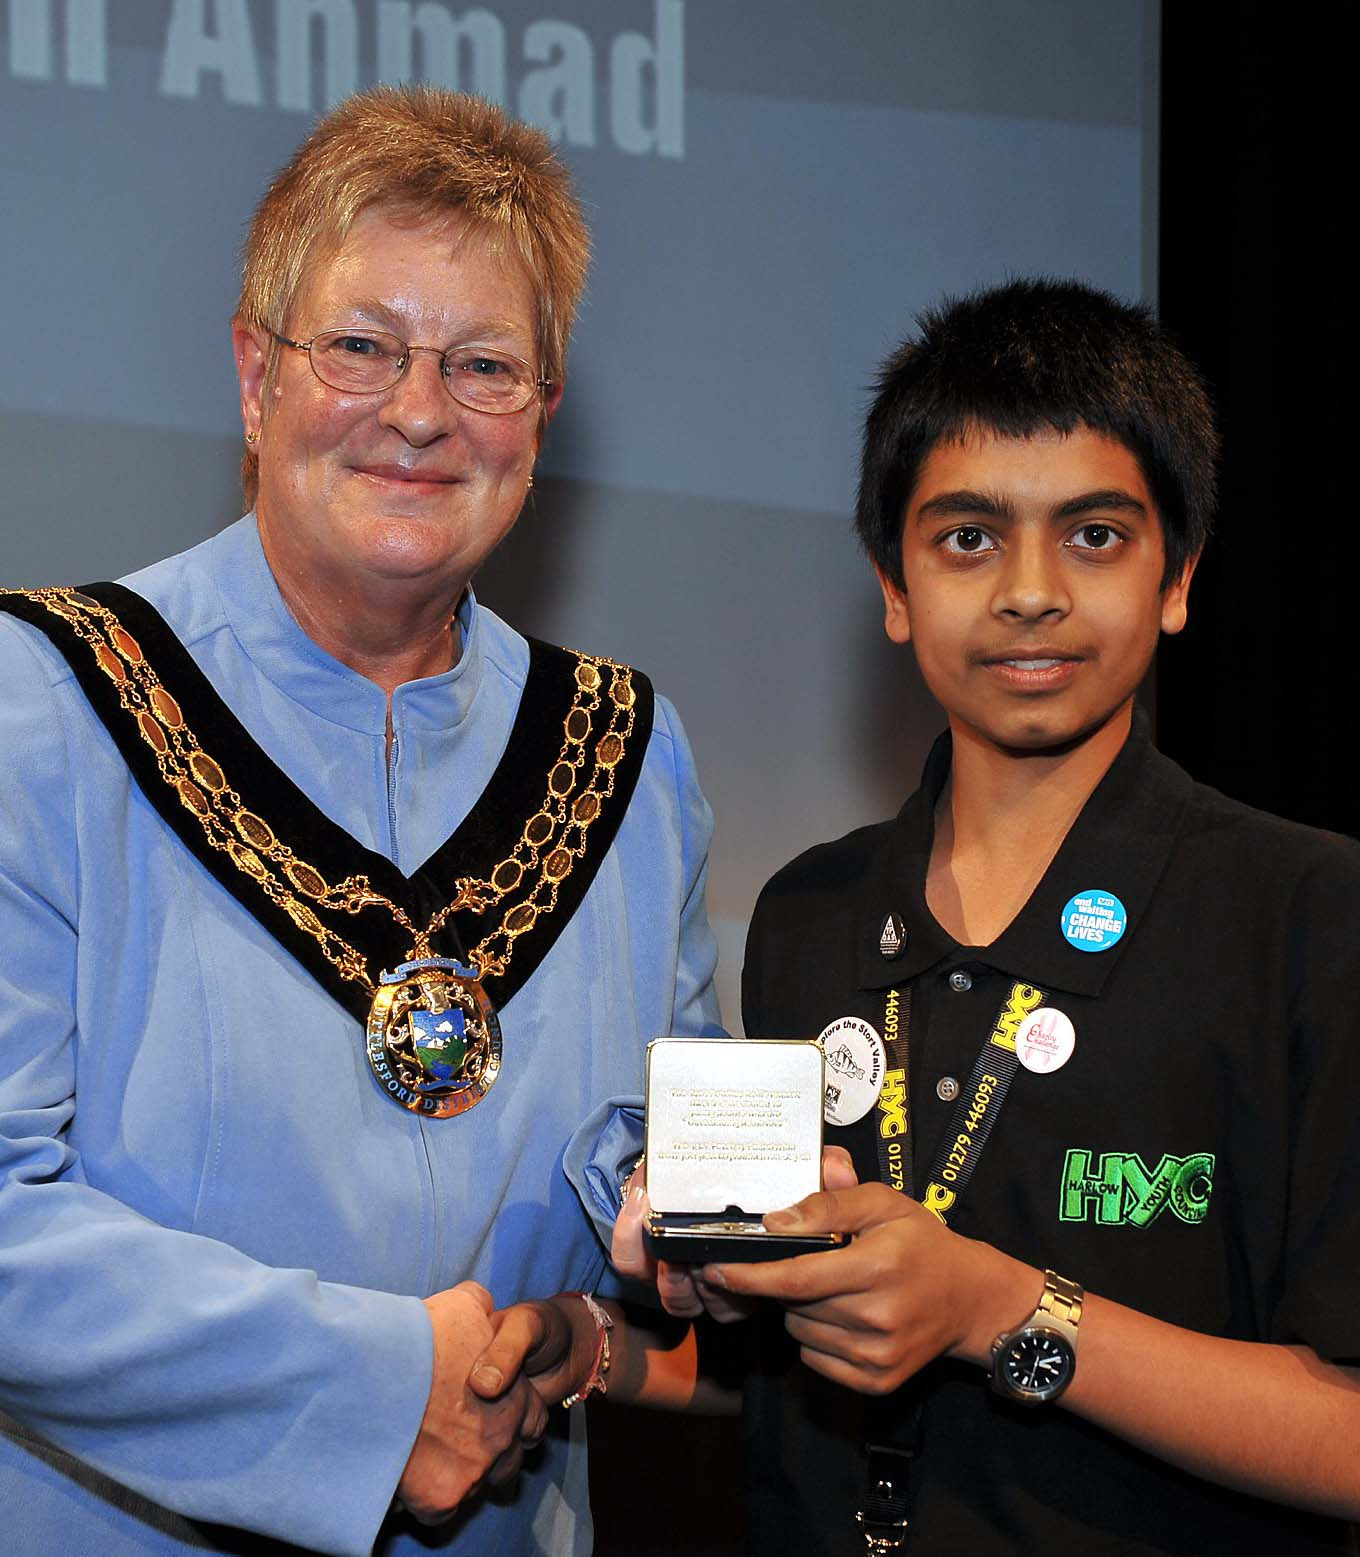 nishall+won+a+jack+petchey+award+5.10.10+form+Harlow+Youth+Council.jpg